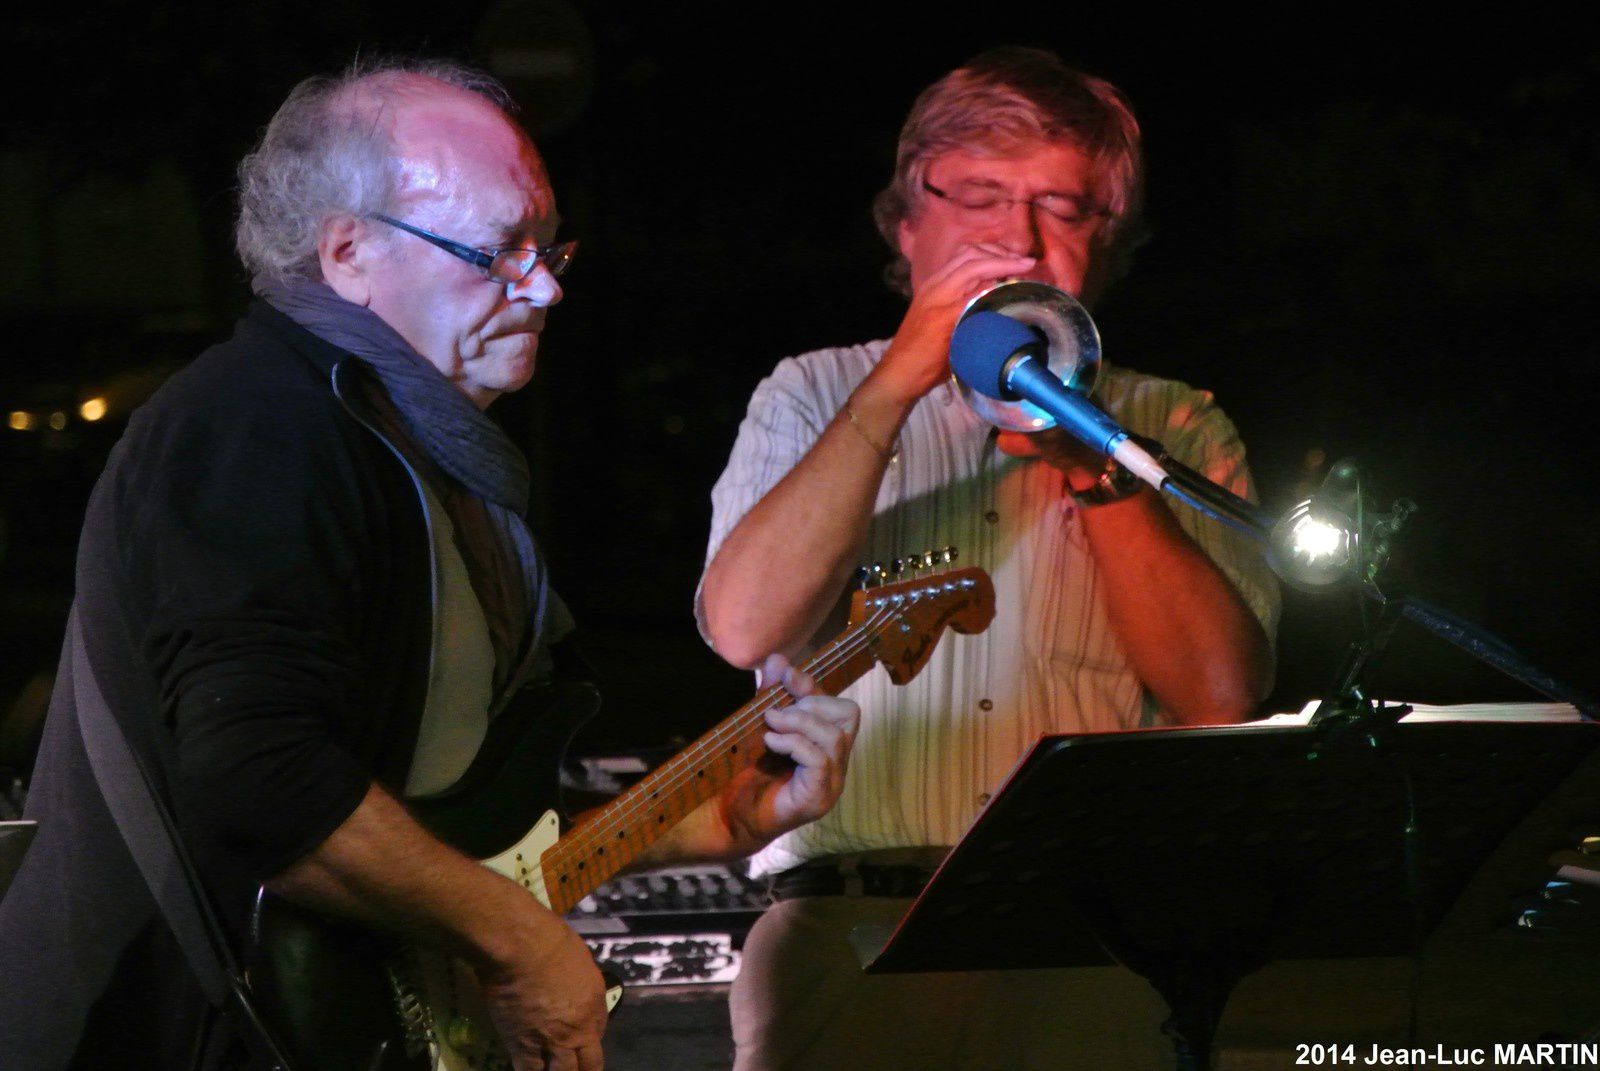 APARTE + JEAN-YVES MARTIN A ST JEAN D'ANGELY 2014